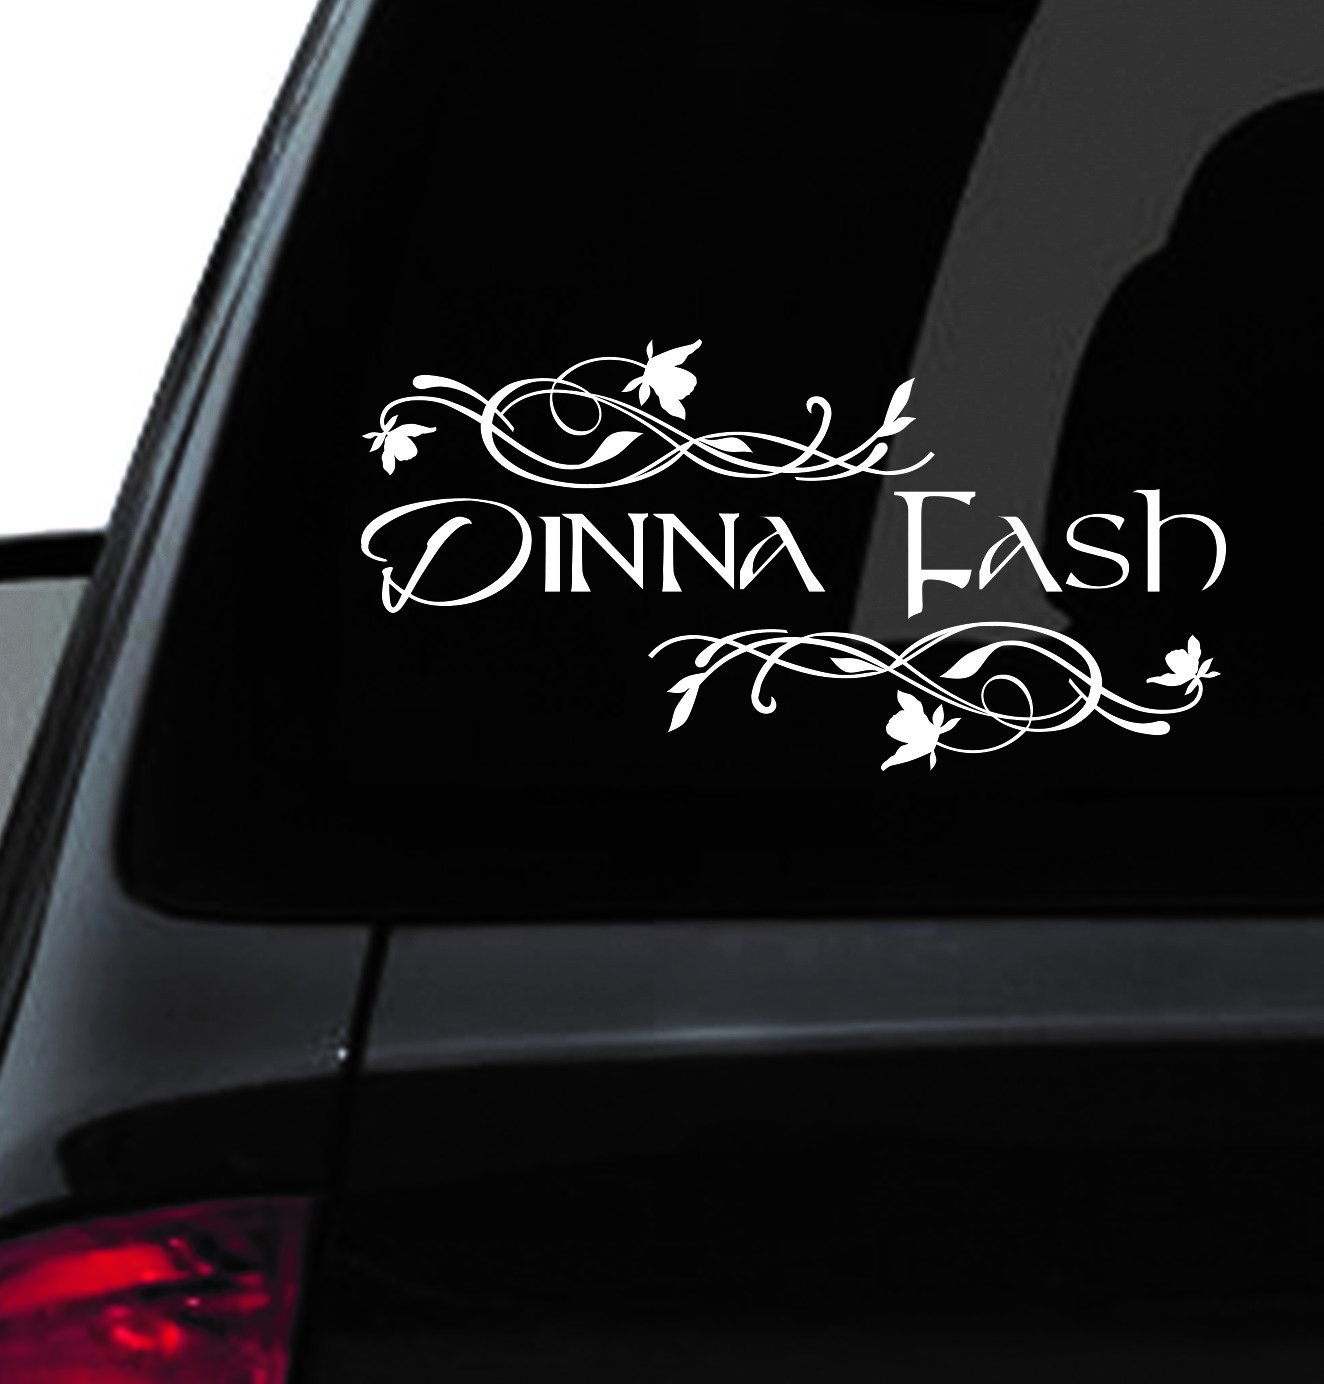 Amazoncom Custom Window Car Decal Dinna Fash Dinna Fash - Custom car window sticker